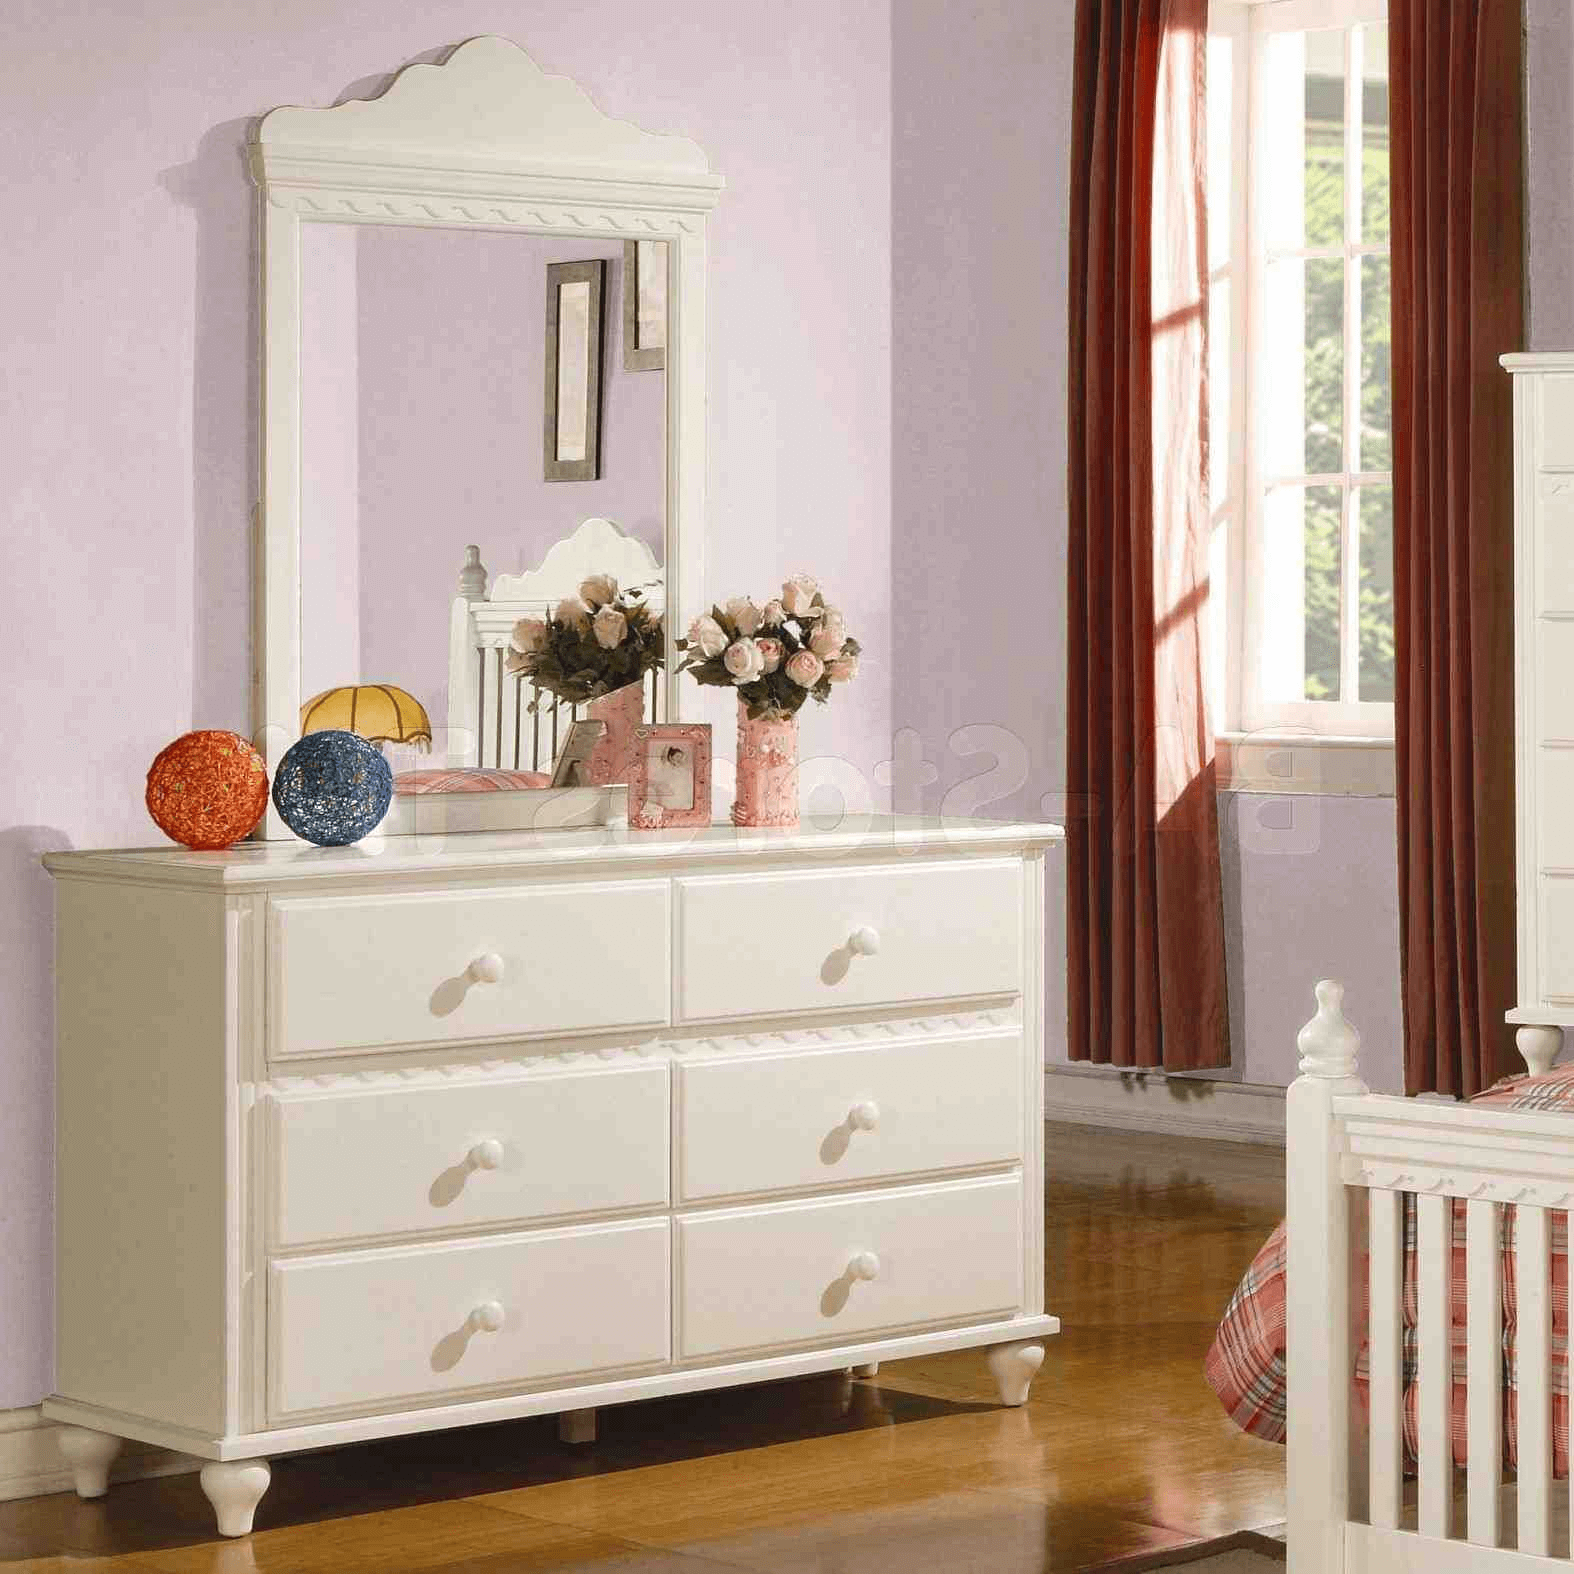 How to decorate a bedroom dresser top